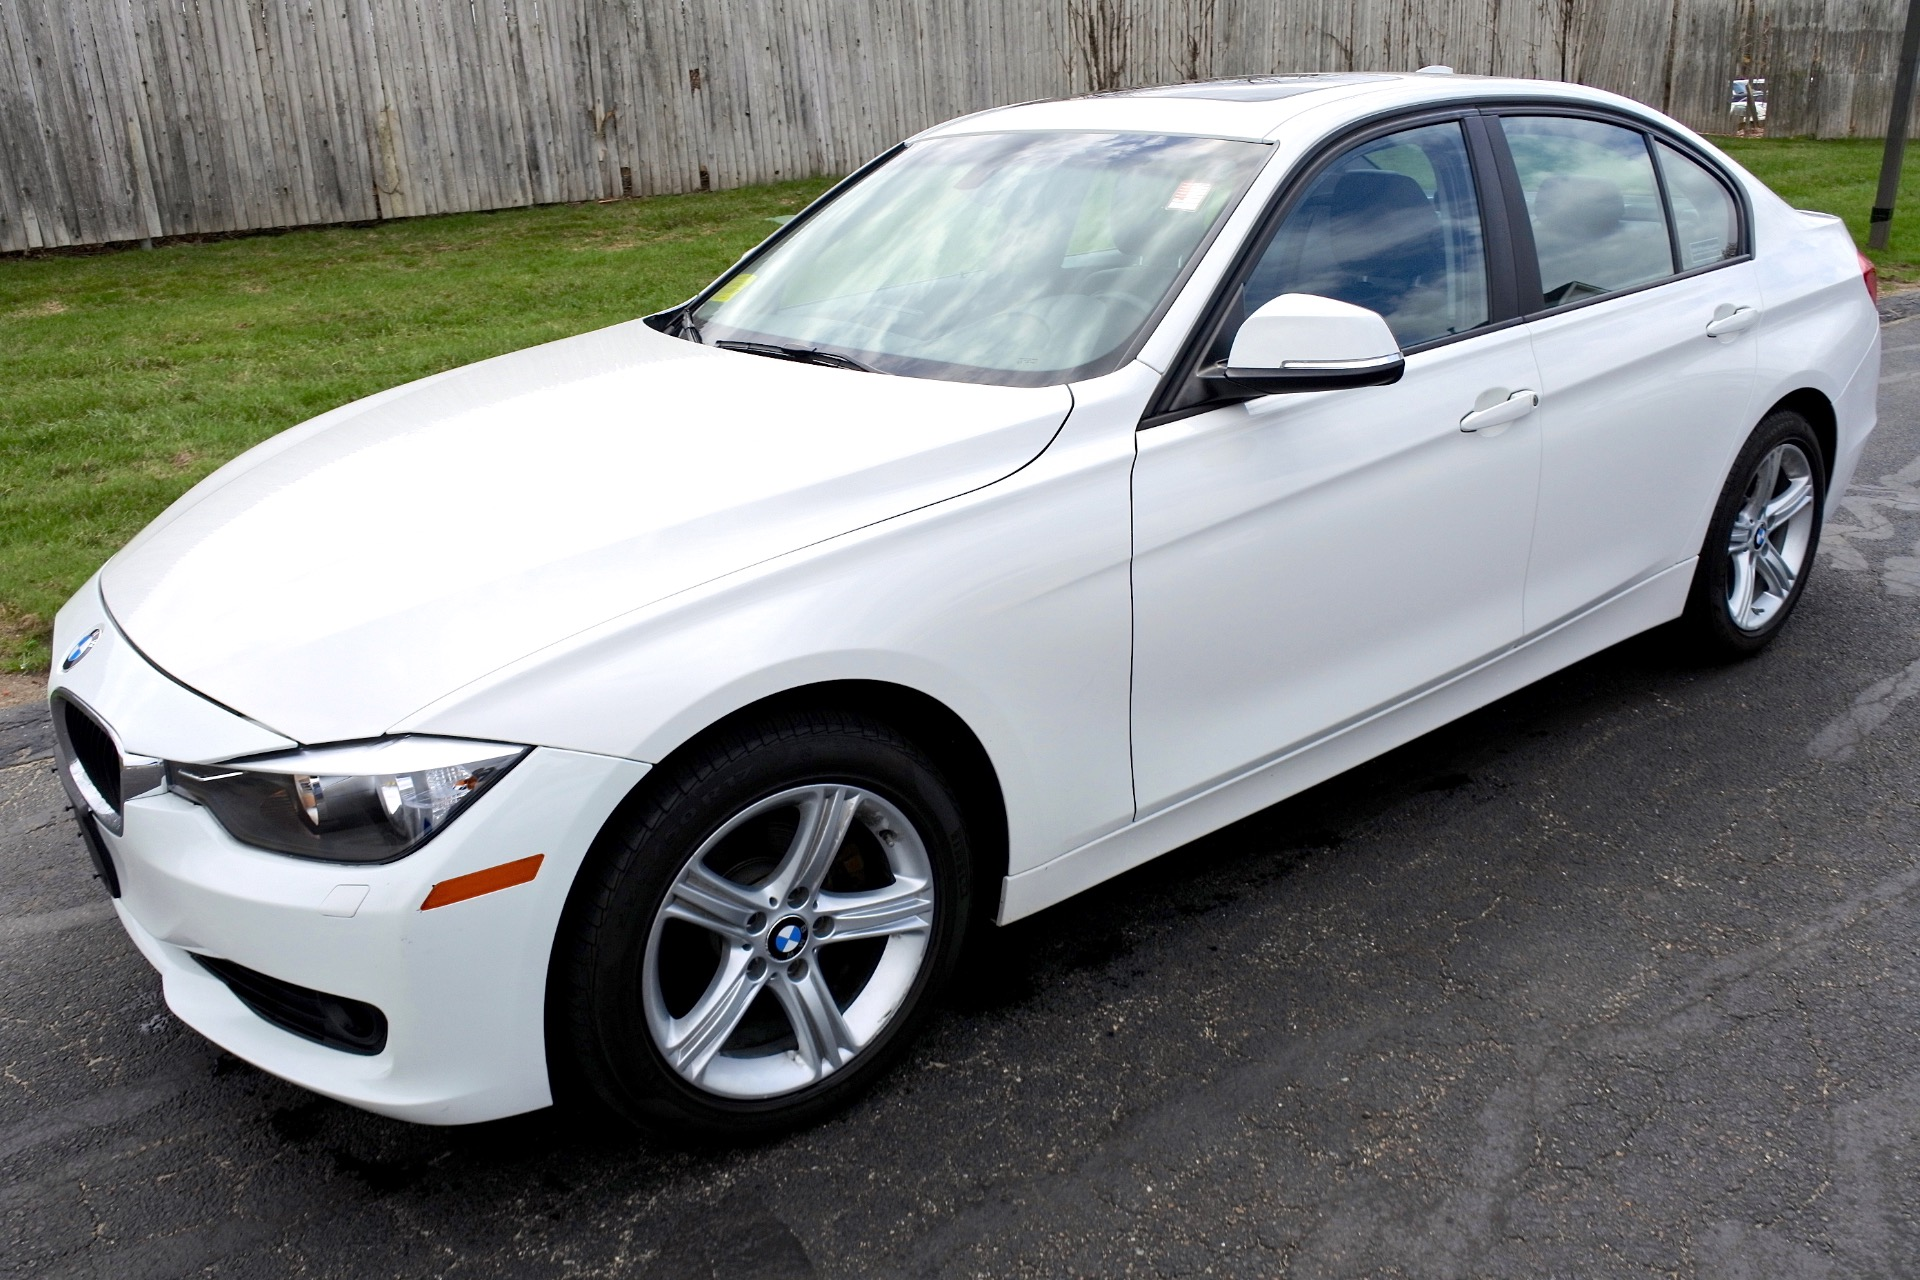 Used 2013 Bmw 3 Series 4dr Sdn 328i Xdrive Awd For Sale 14 770 Metro West Motorcars Llc Stock 698856